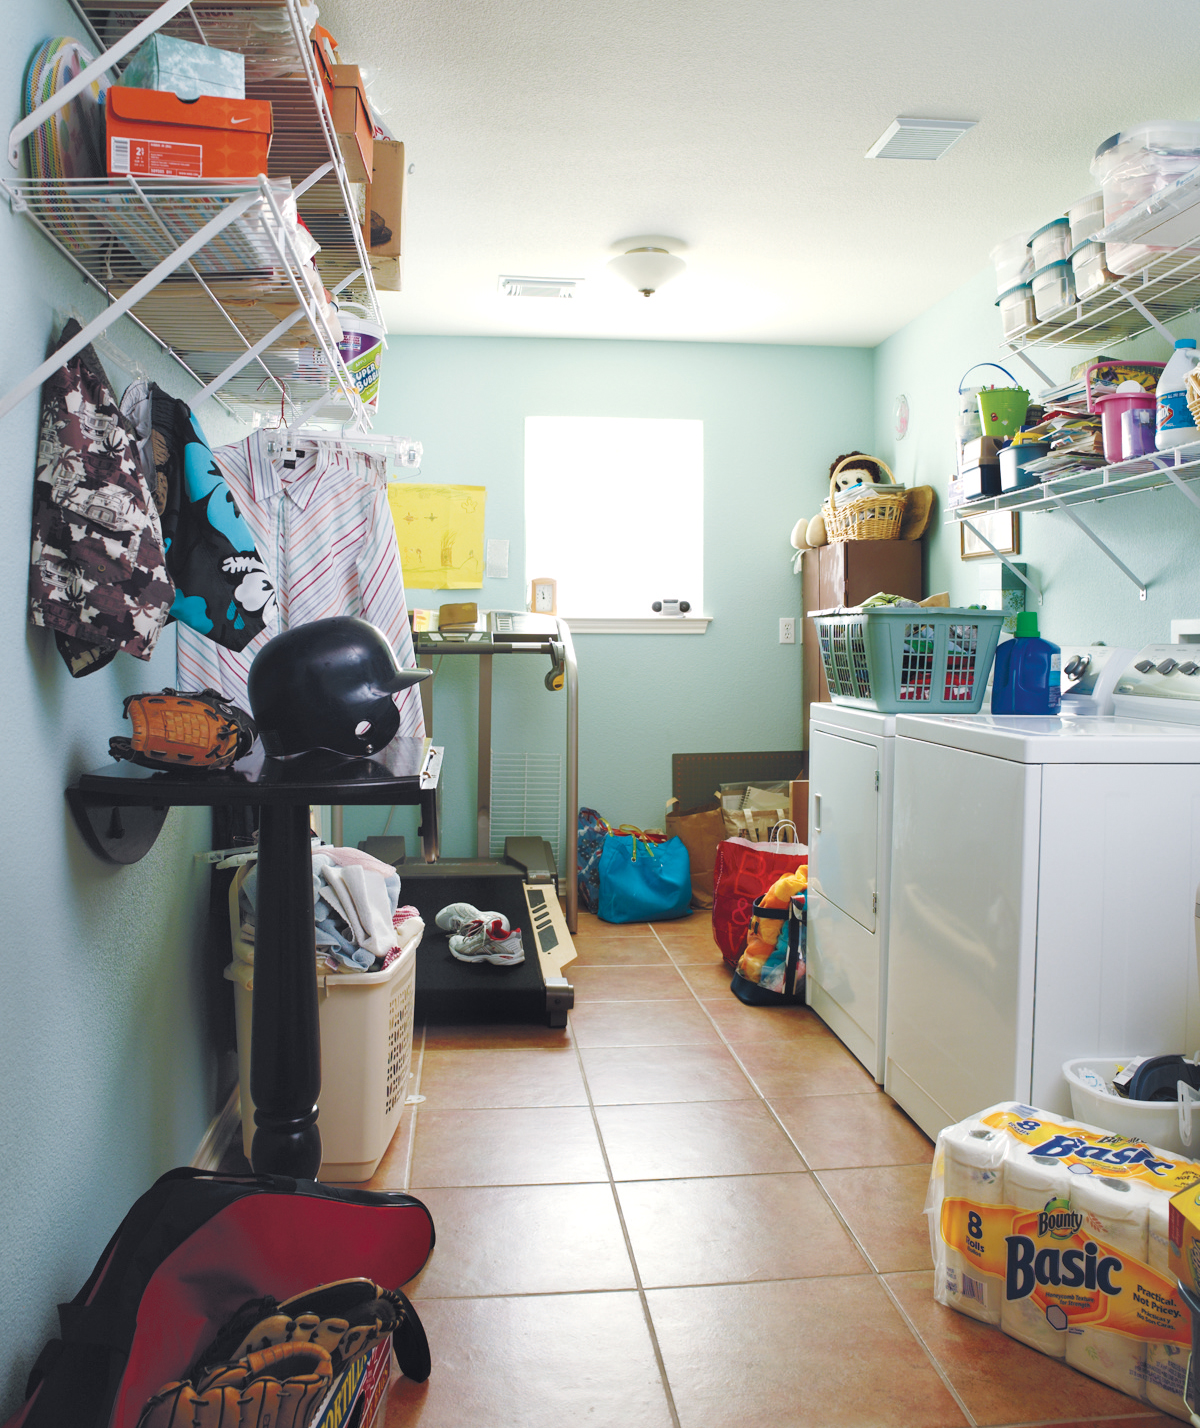 Messy Kitchen Menu: Get Organized With These Home Makeover Ideas